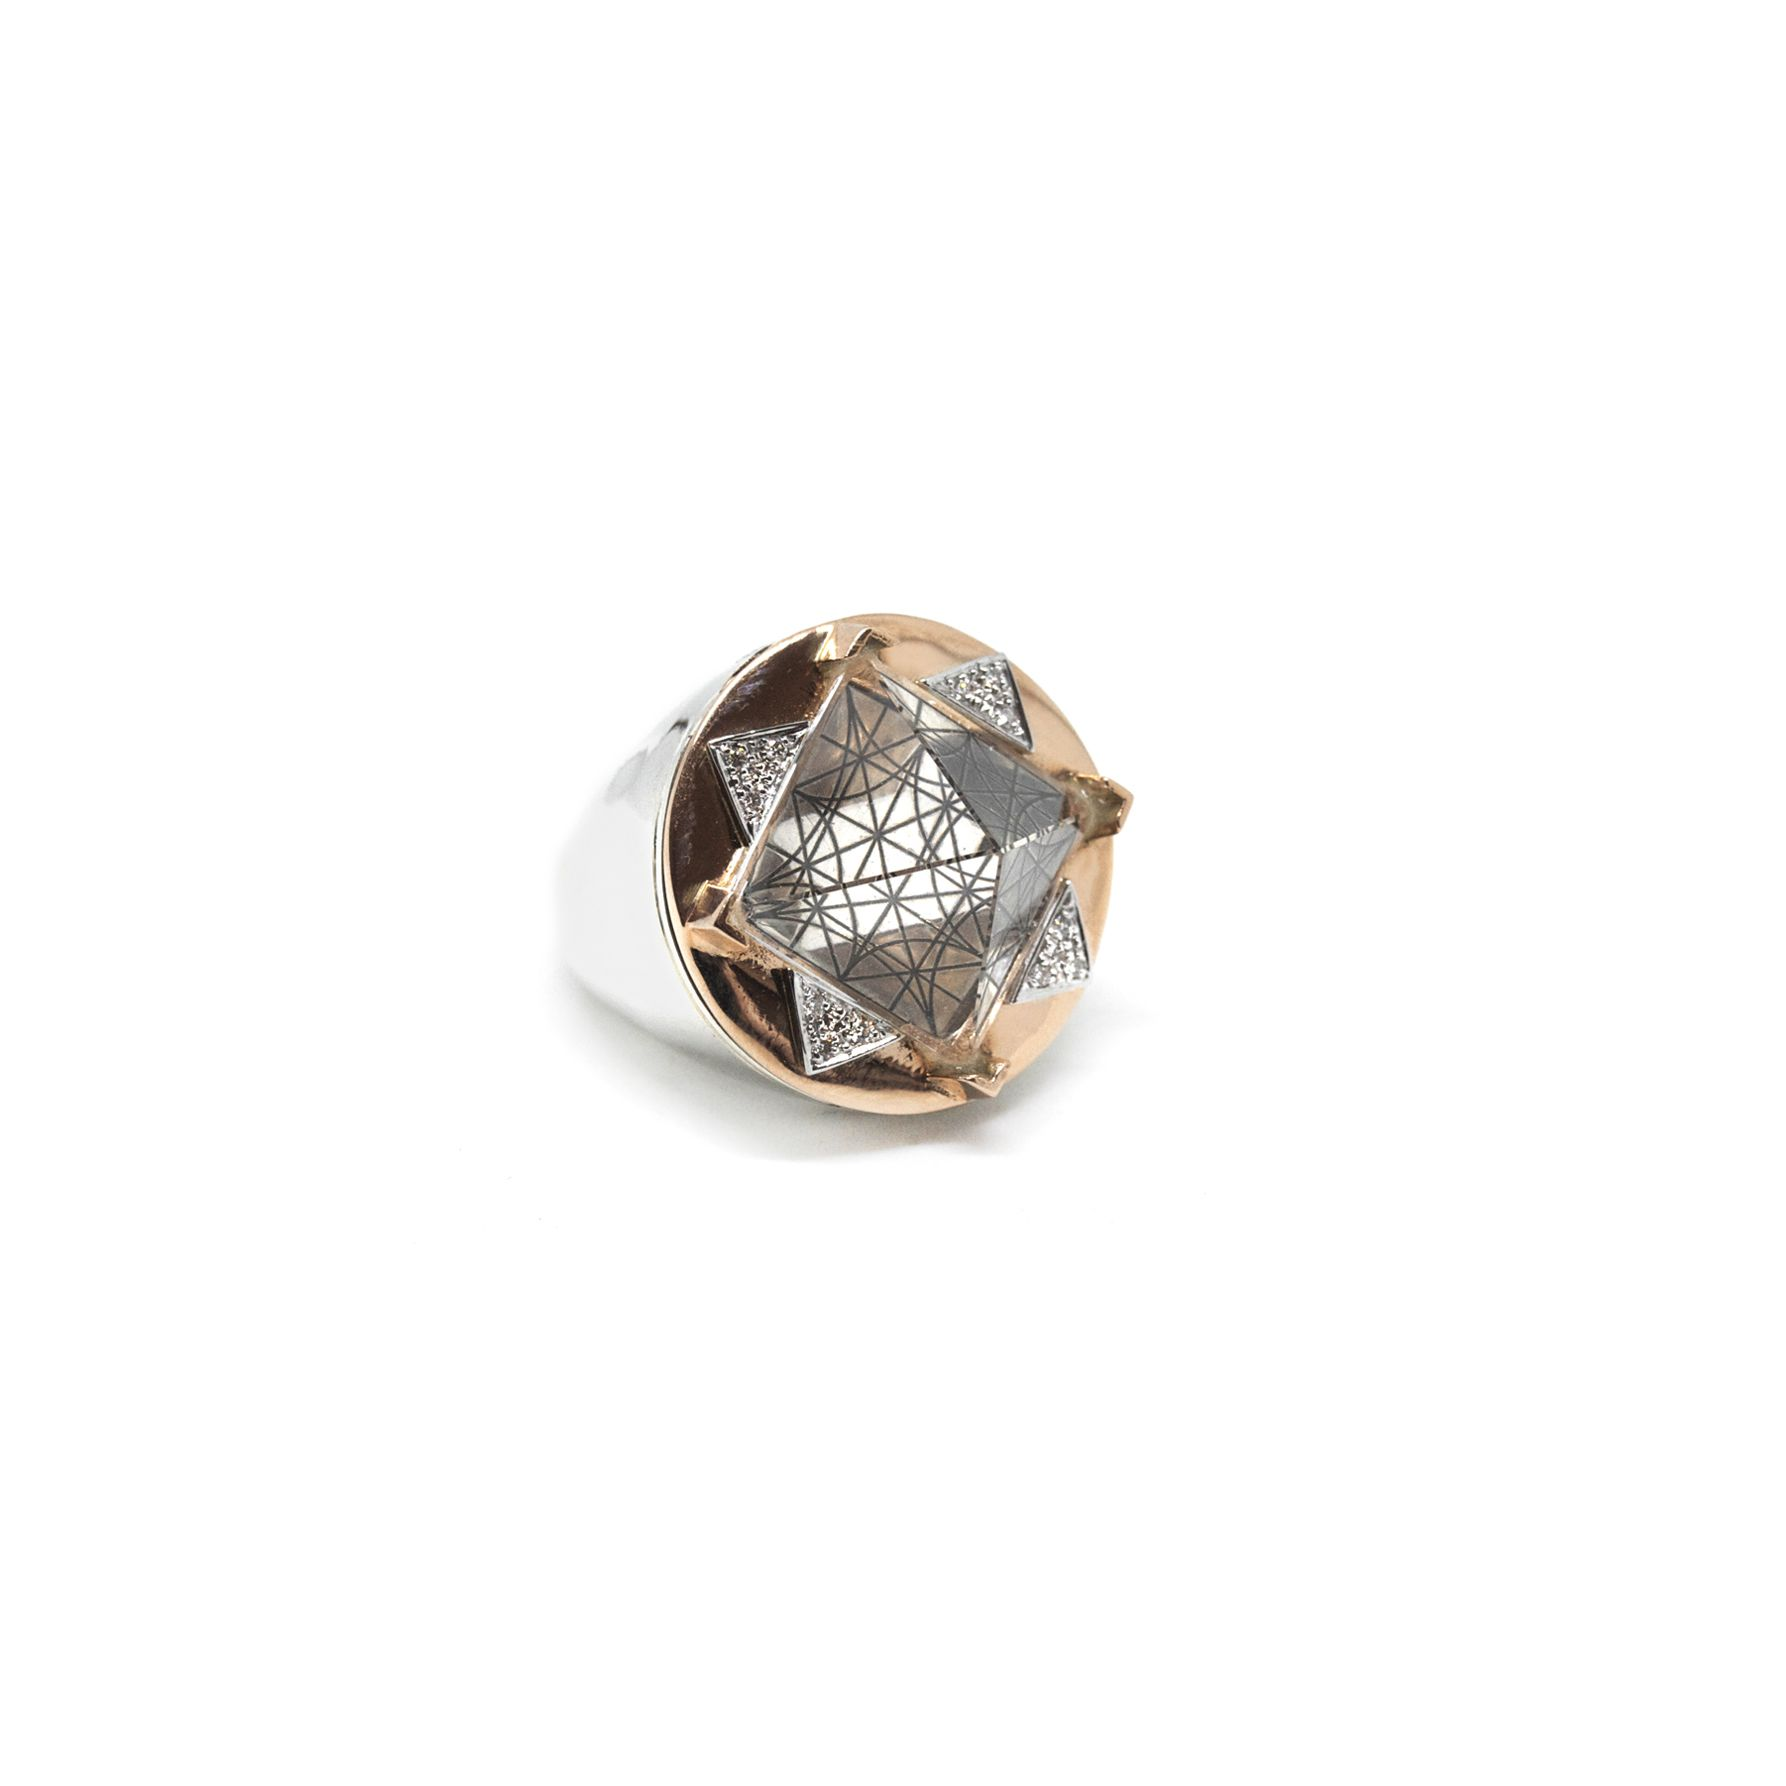 Openable 'Entropia' ring in rose gold Silver, rose gold and champagne diamonds ring